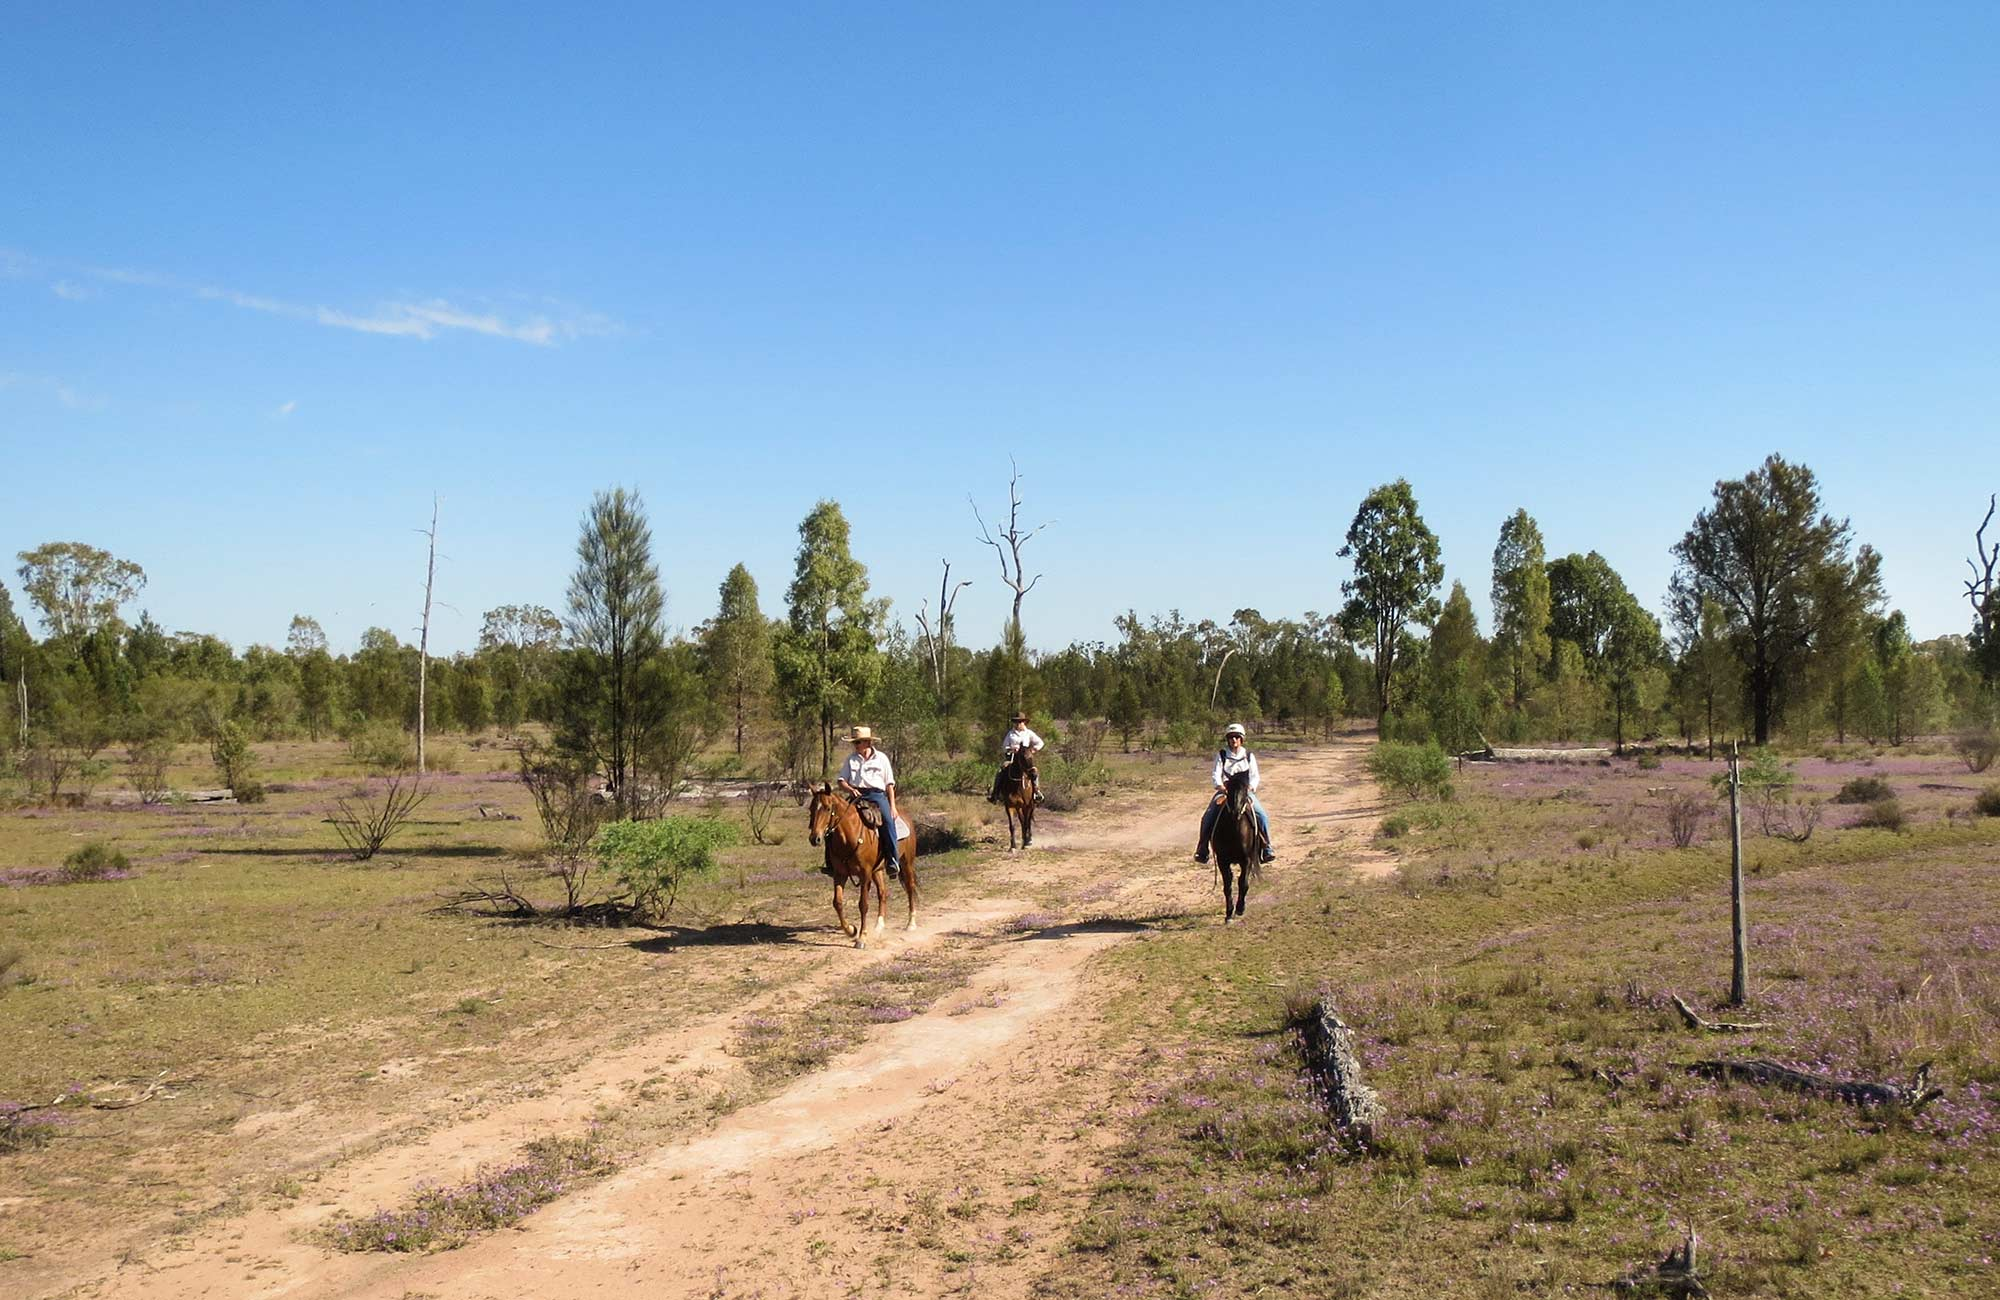 Horse riding trails, Dthinna Dthinnawan National Park. Photo: Michael Lieberman